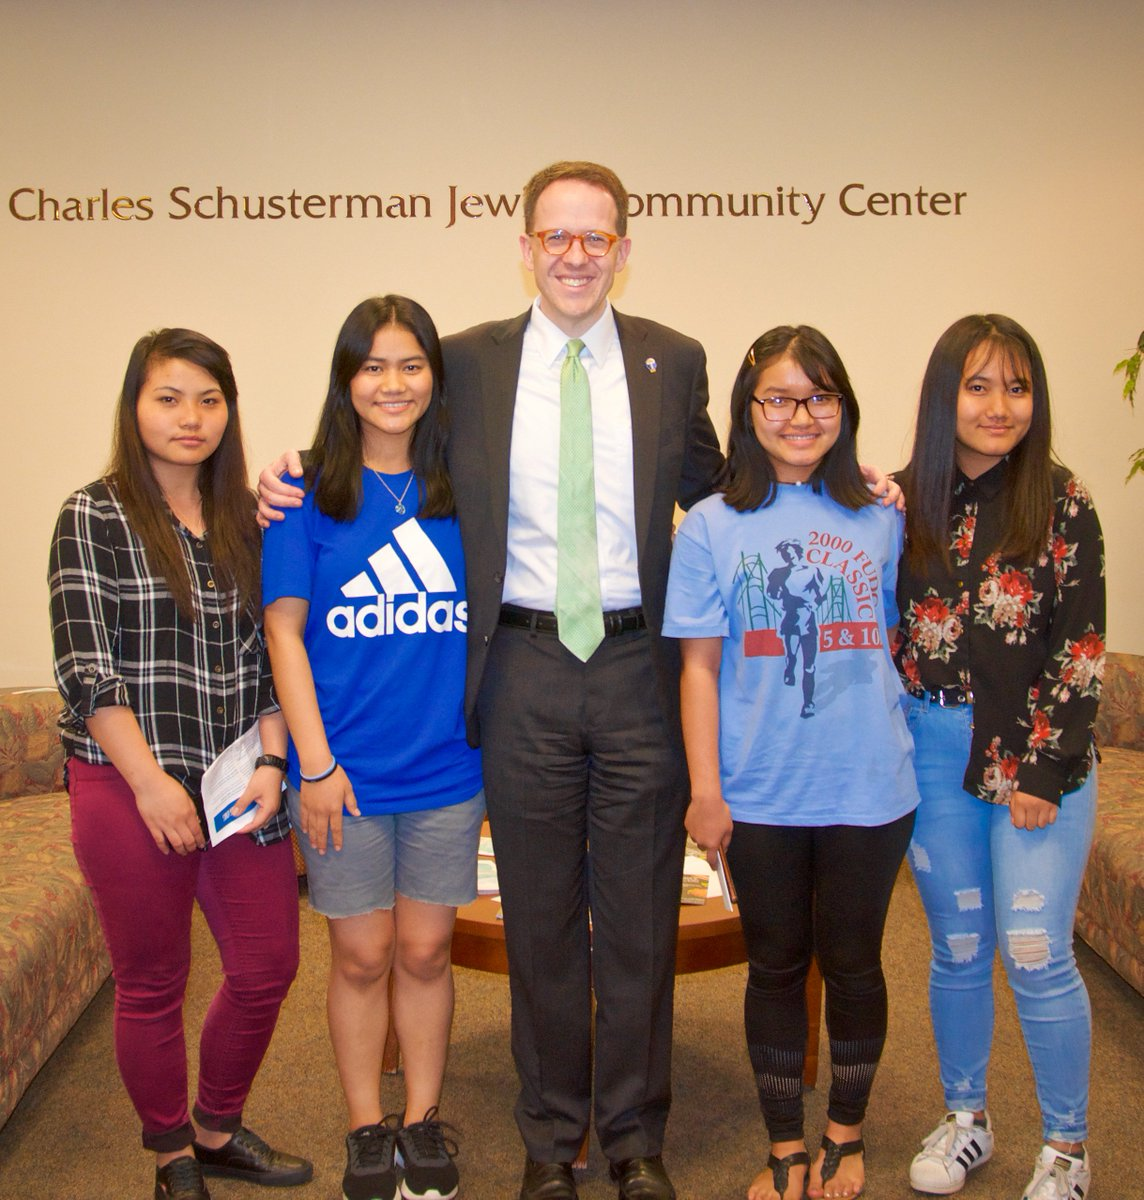 Some of our talented bilingual students met Tulsa Mayor @gtbynum while volunteering as interpreters at the Improve Our Tulsa town hall event. Job well done Huai Ciang, Cing Zo, Cing Niang, and Ciin Shalom! <br>http://pic.twitter.com/p71Uverodp